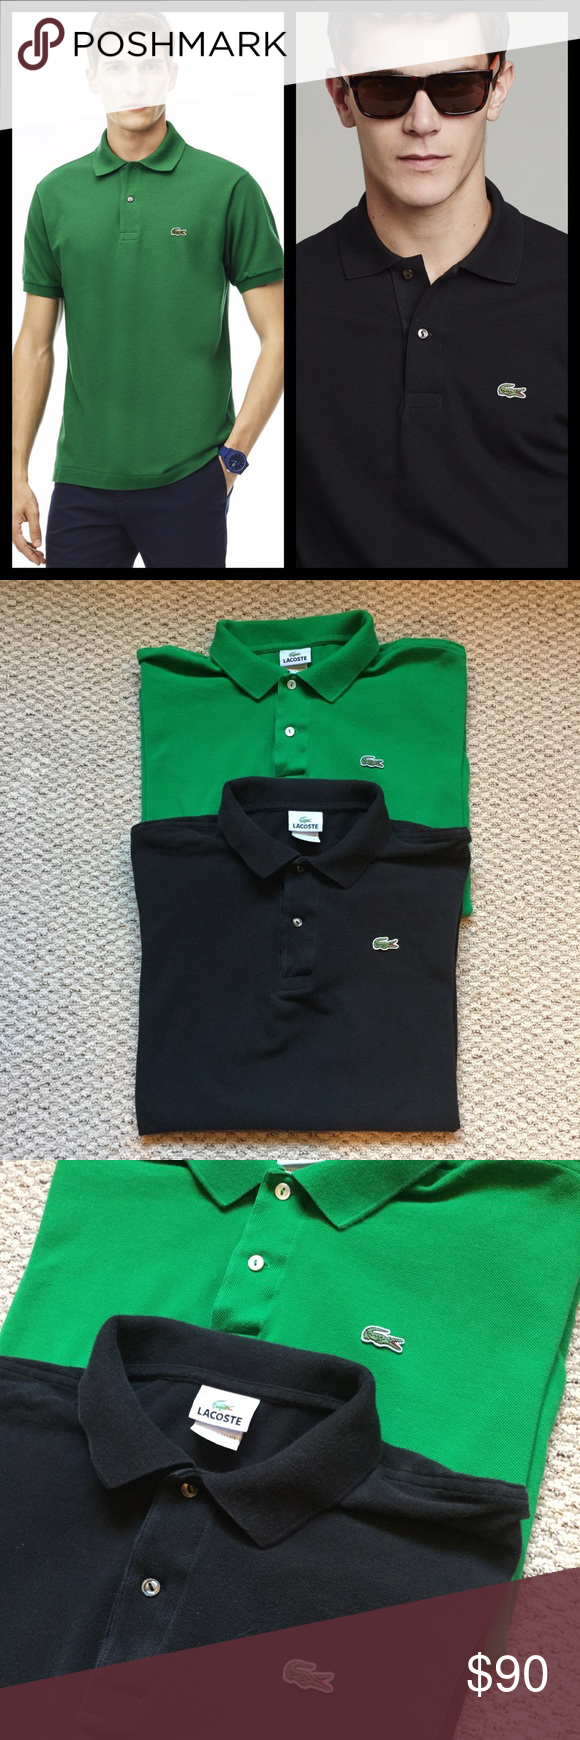 34a088f4 BUNDLE OF 2 Men's Lacoste Classic Polo Shirts 7/XL Lacoste timeless pique  knit polo